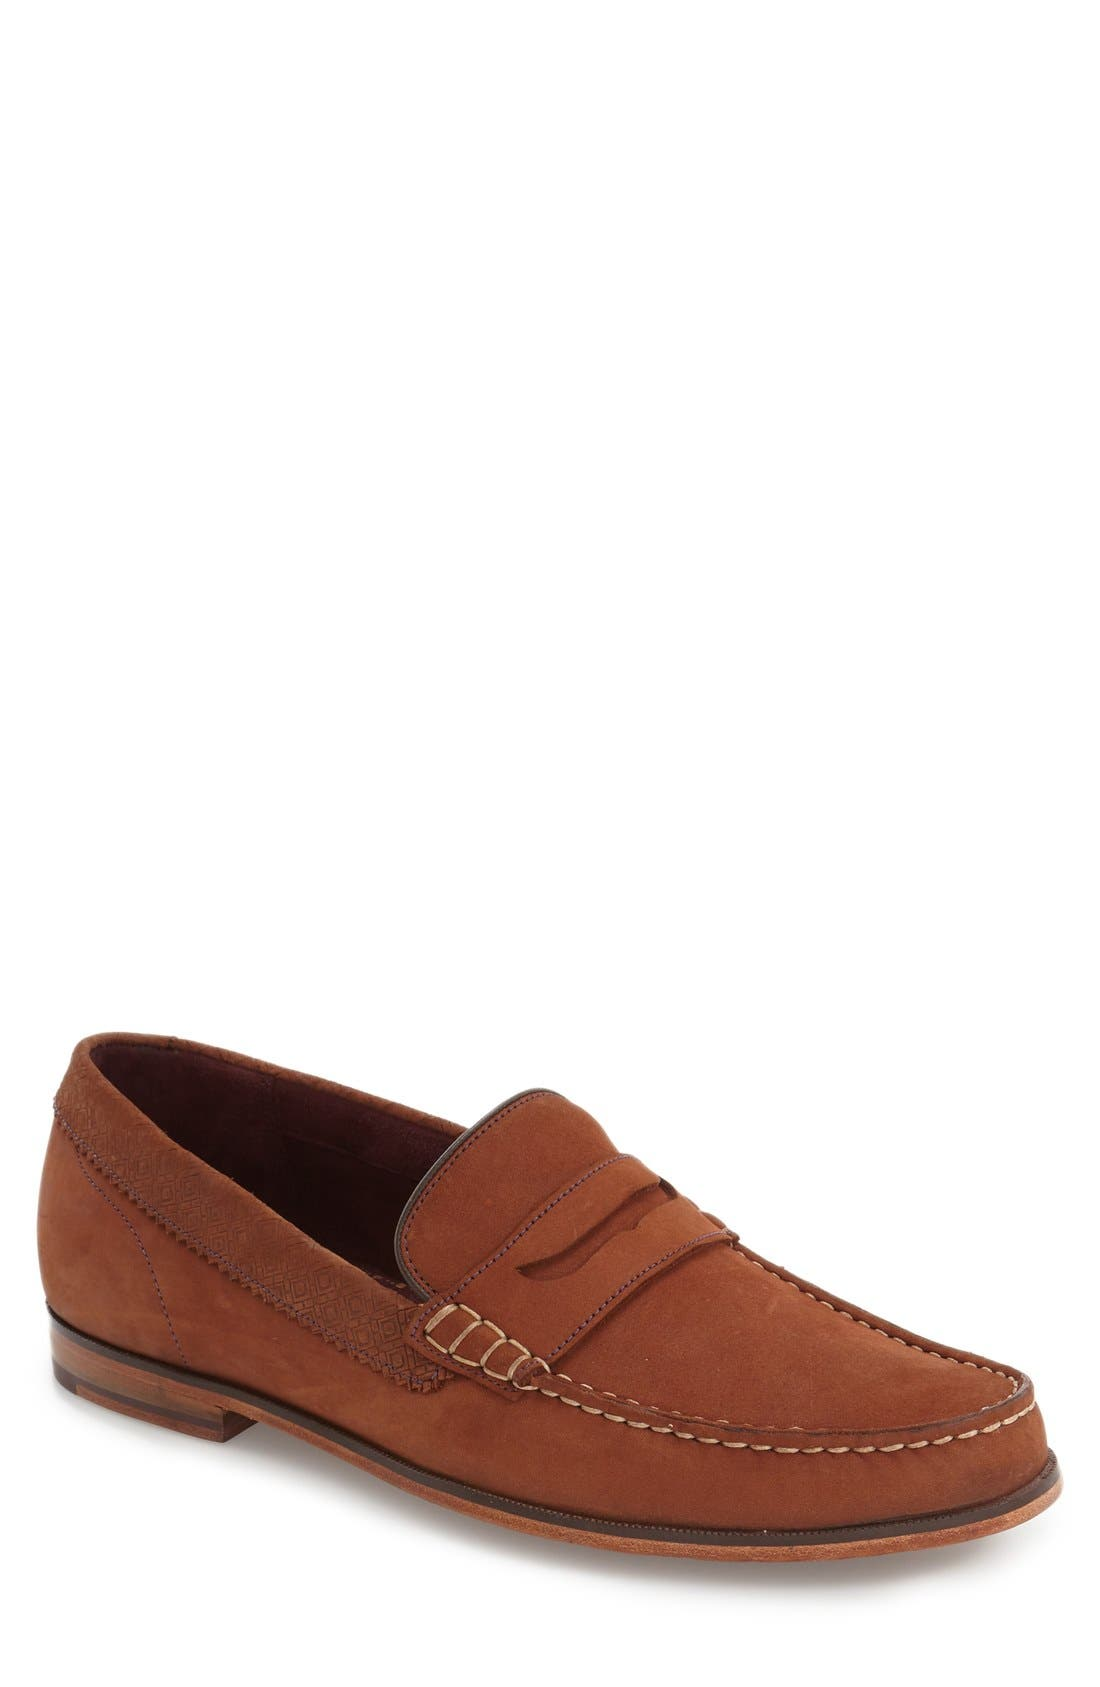 Alternate Image 1 Selected - Ted Baker London 'Miicke 2' Penny Loafer (Men)